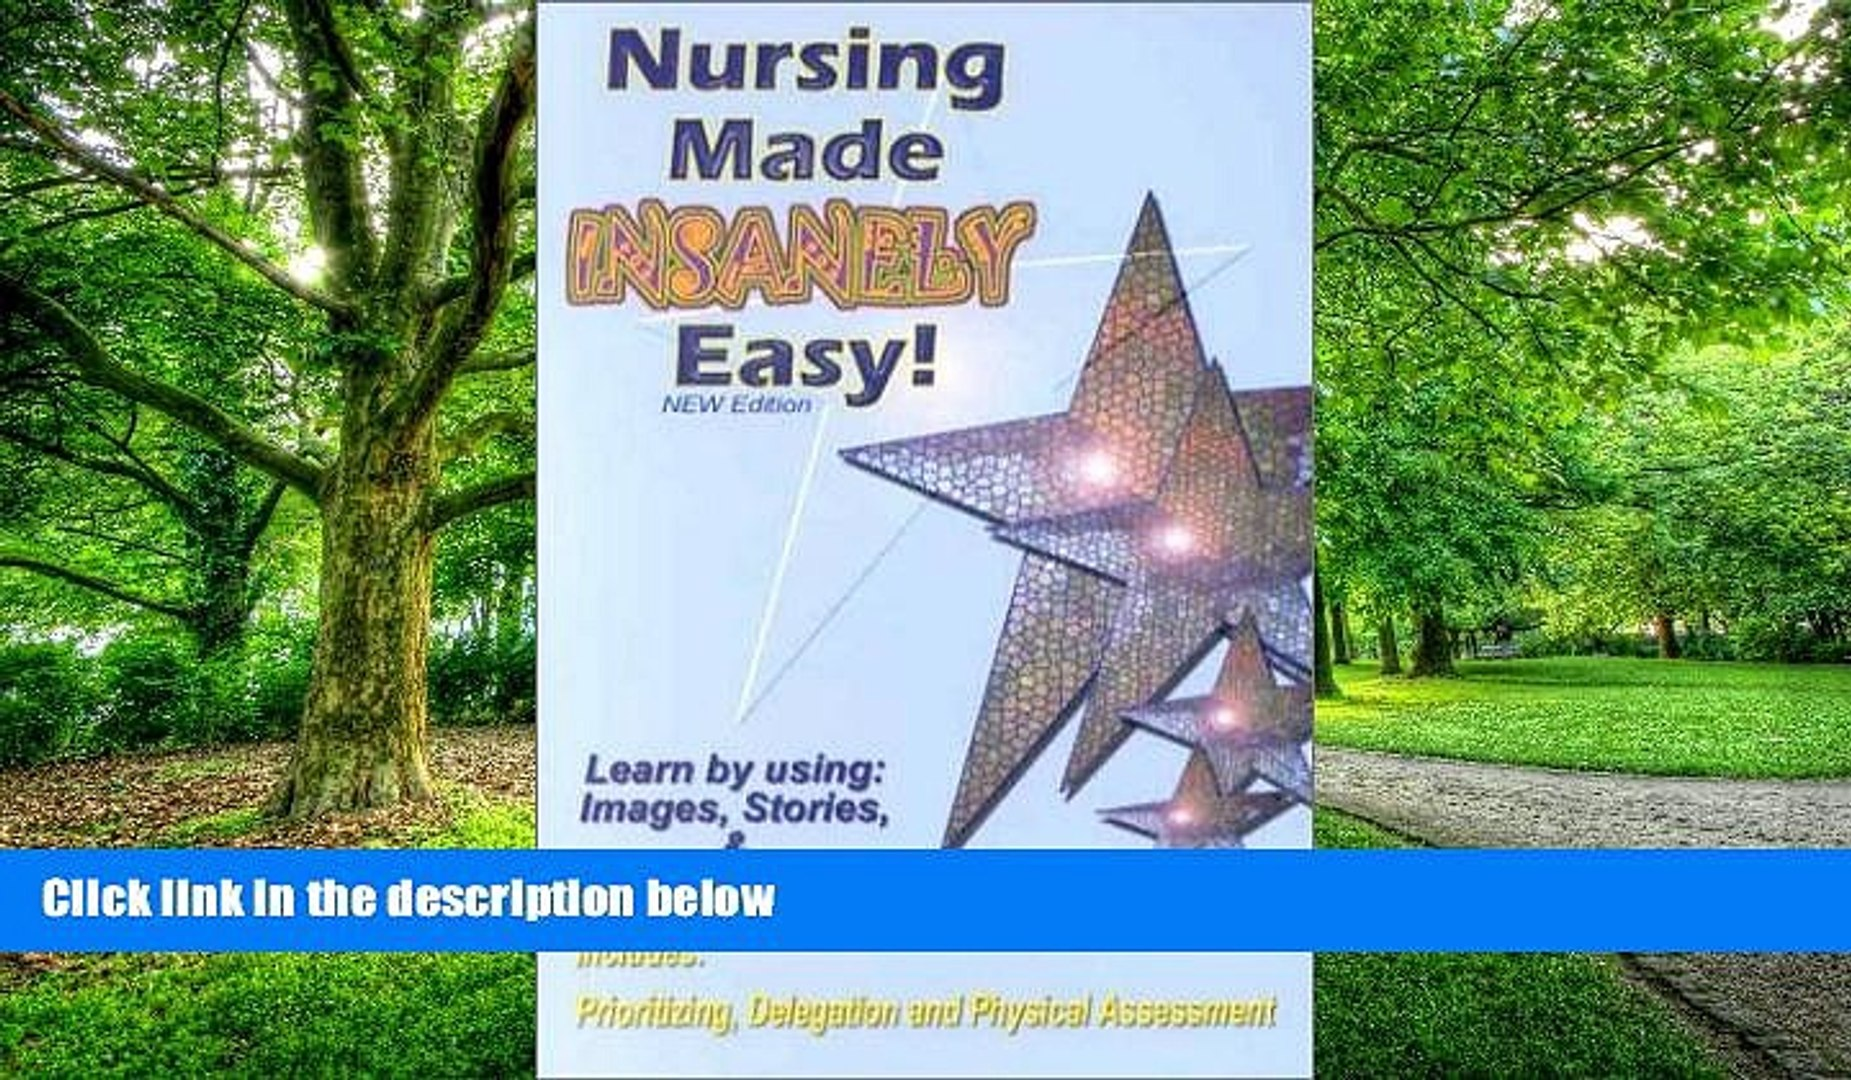 Audiobook Nursing Made Insanely Easy! Sylvia Rayfield mp3